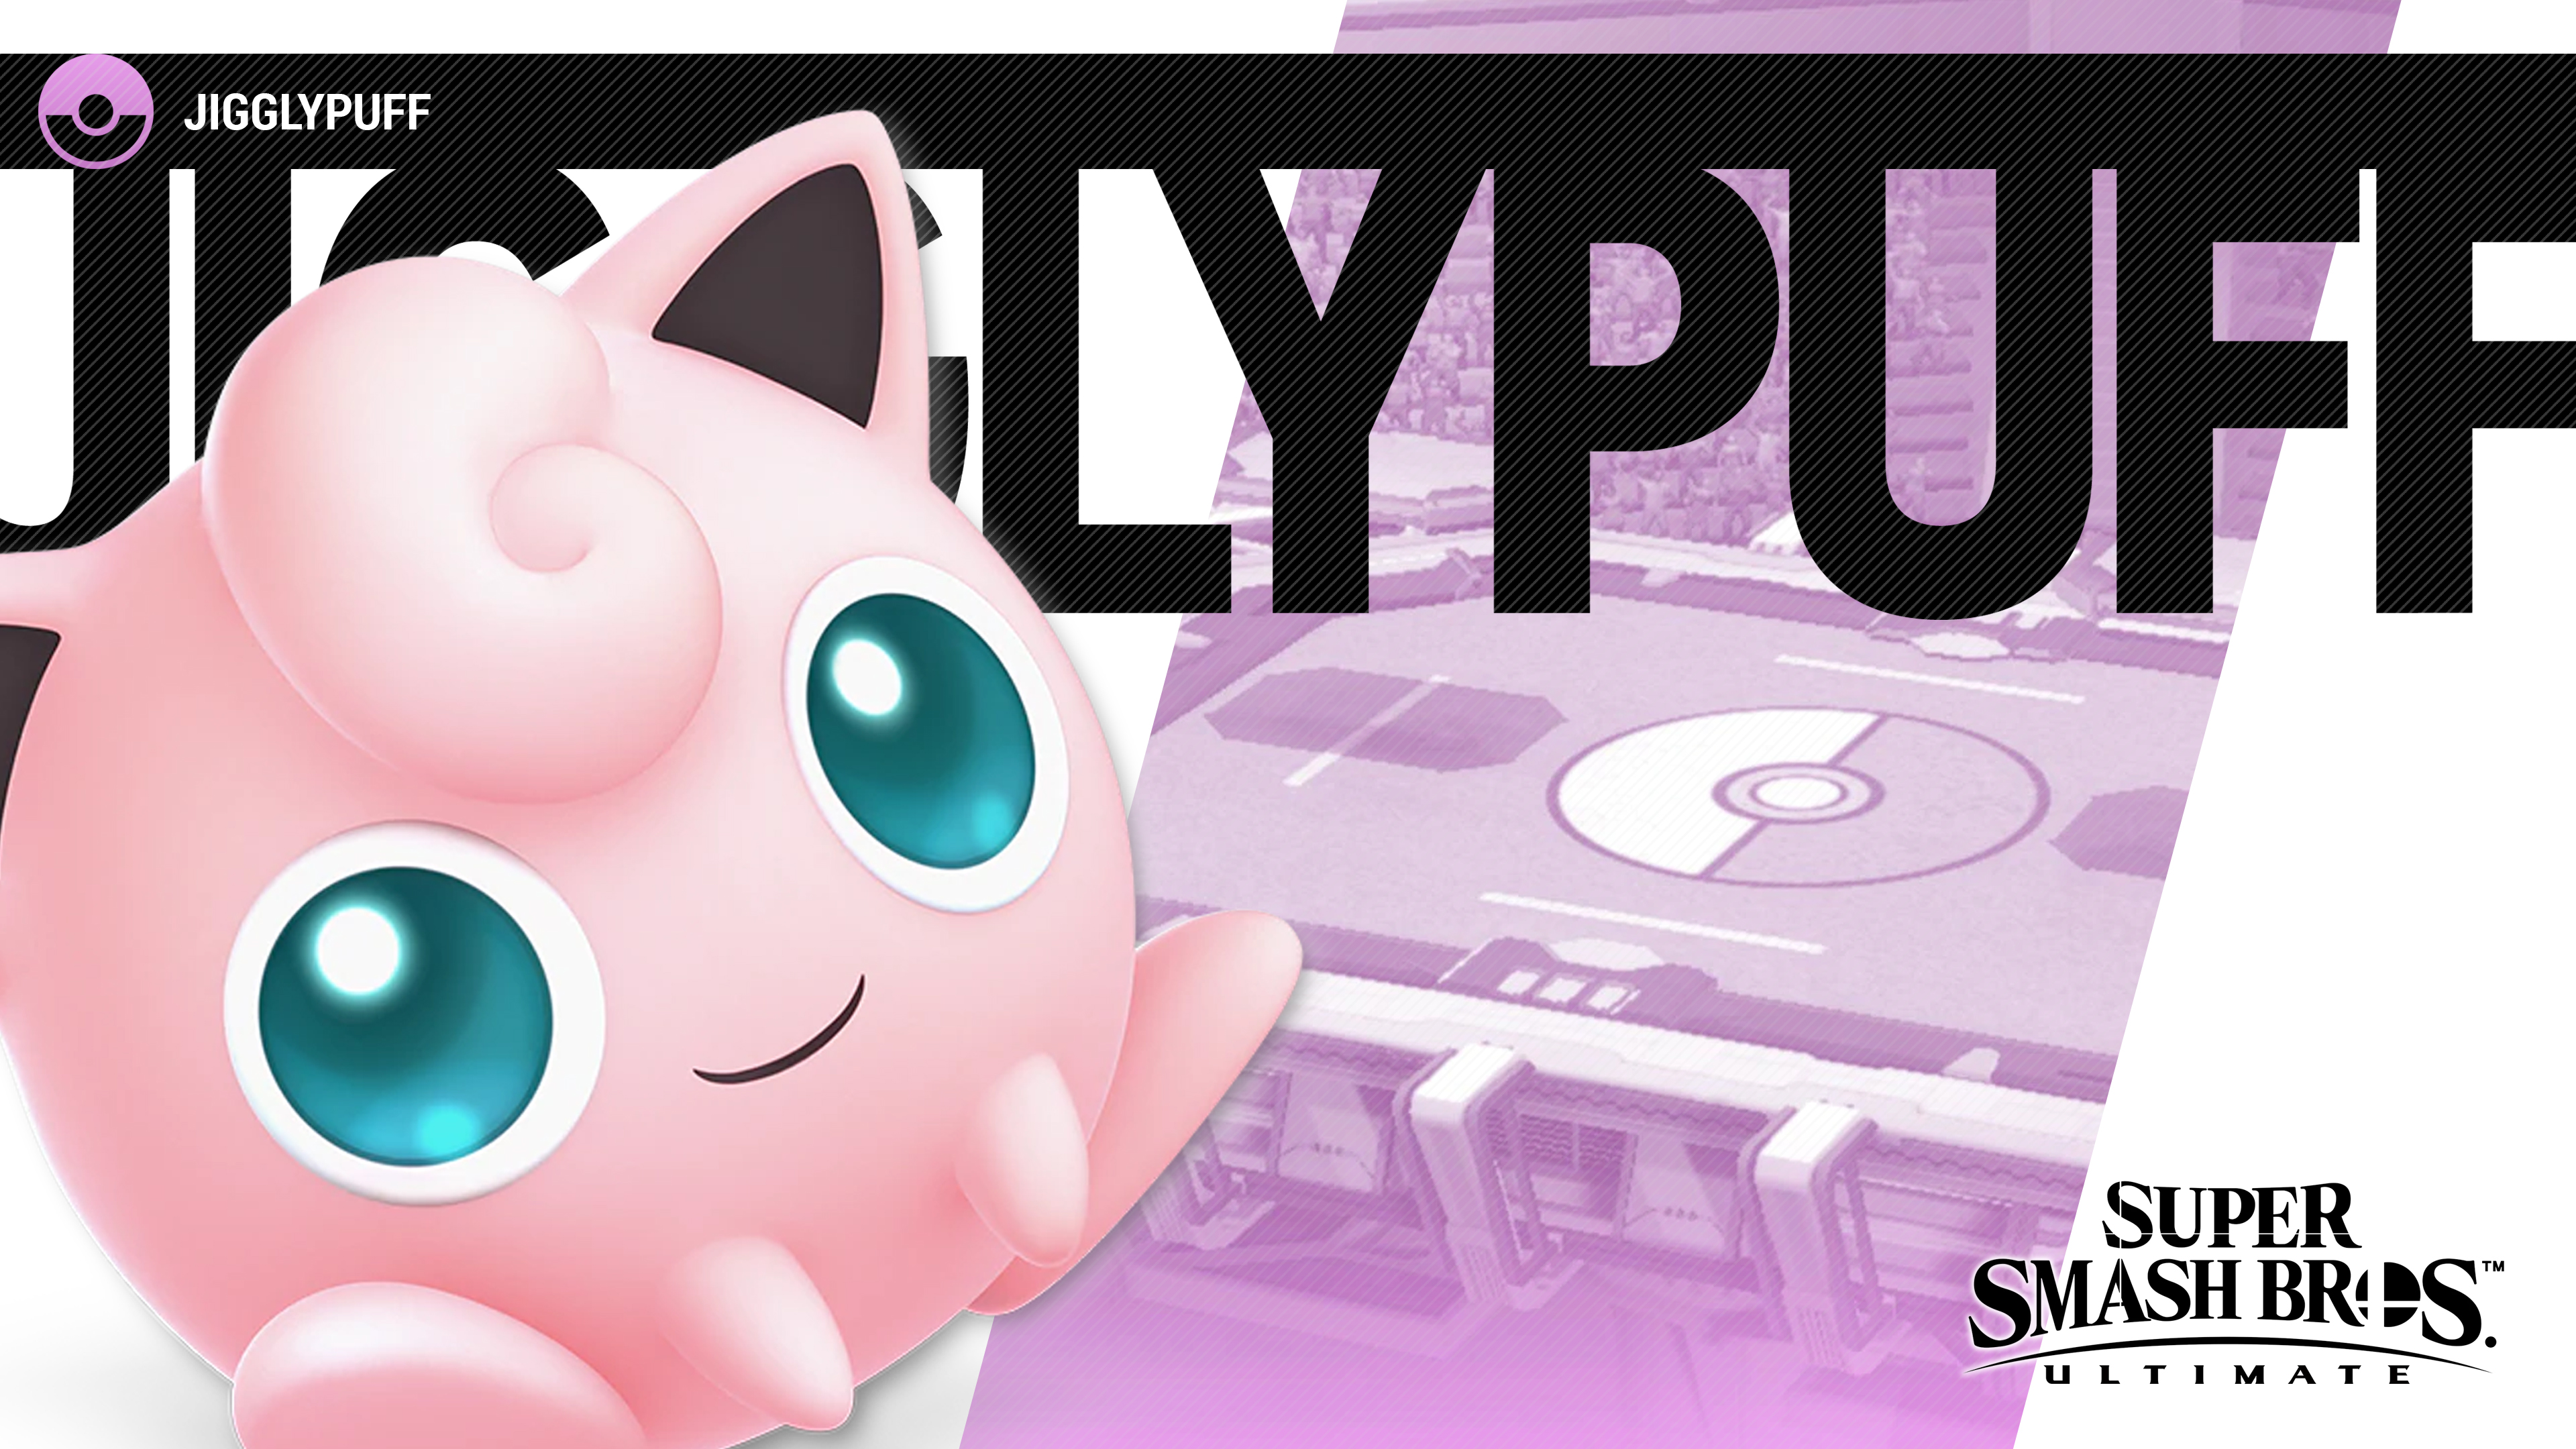 Super Smash Bros Ultimate Jigglypuff Wallpapers Cat With Monocle